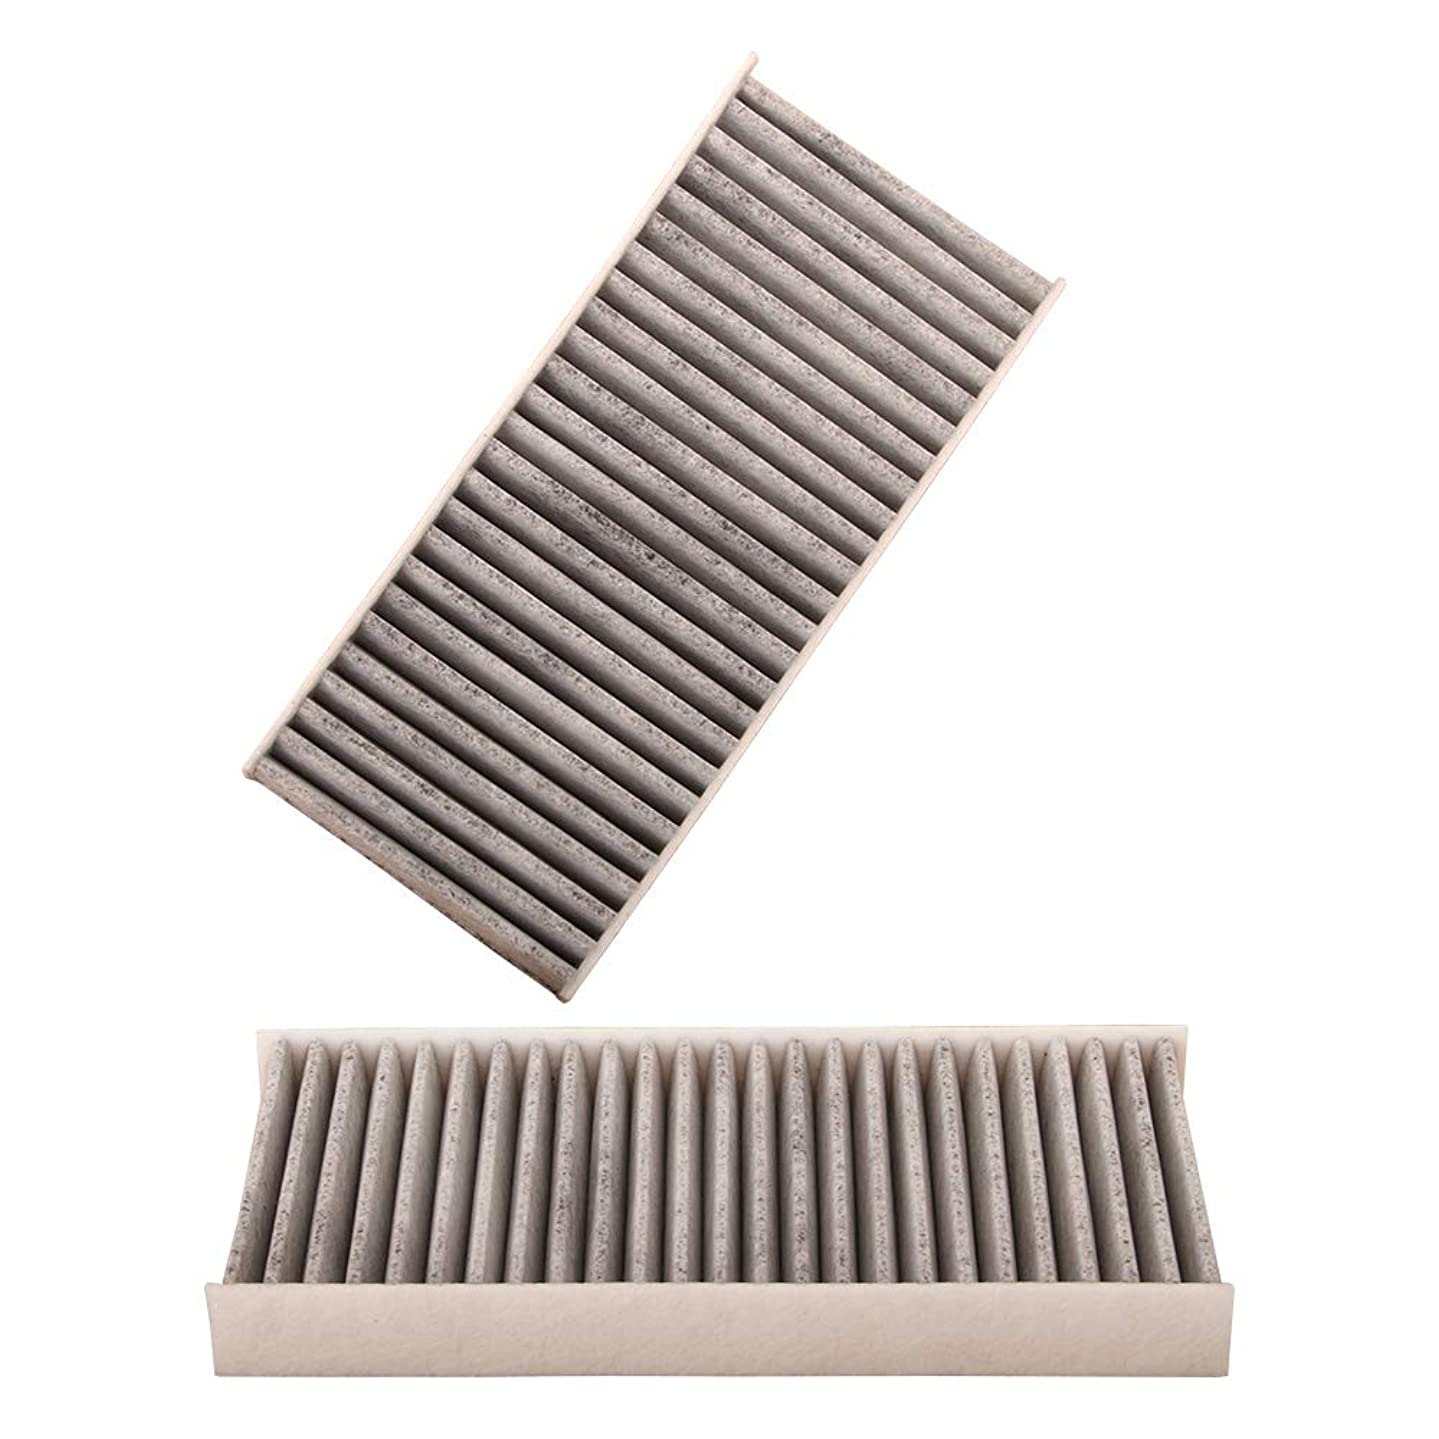 WTKSOY WTF012 Cabin Air Filter Includes Activated Carbon Fit Infiniti QX56 Nissan Armada NV2500 NV3500 Pathfinder Titan